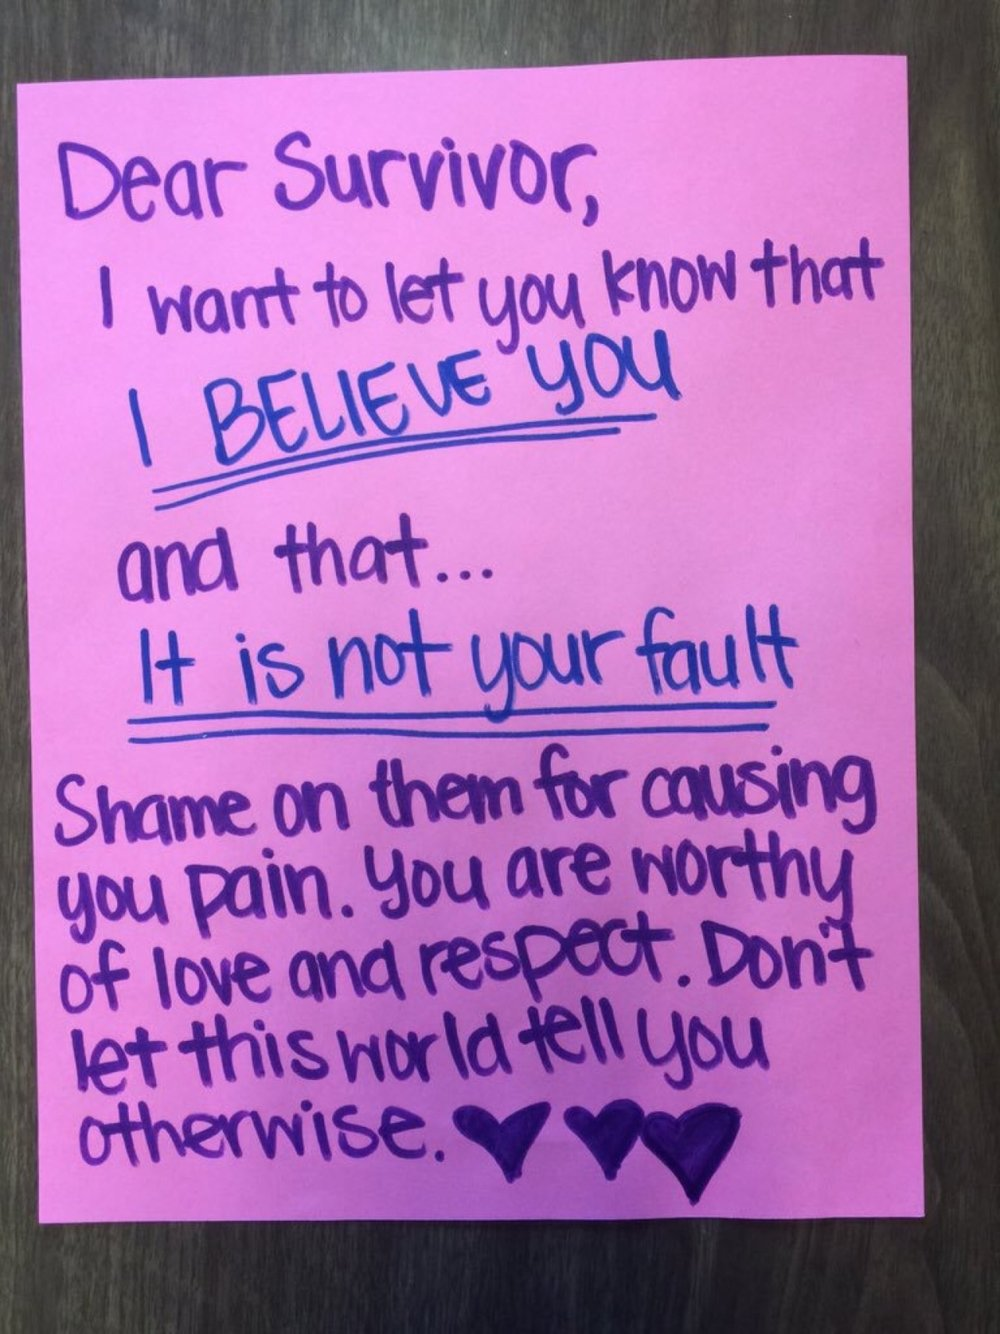 Dear Survivor,  I want to let you know that I BELIEVE YOU and that… It is not your fault  Shame on them for causing you pain. You are worthy of love and respect. Don't let this world tell you otherwise.